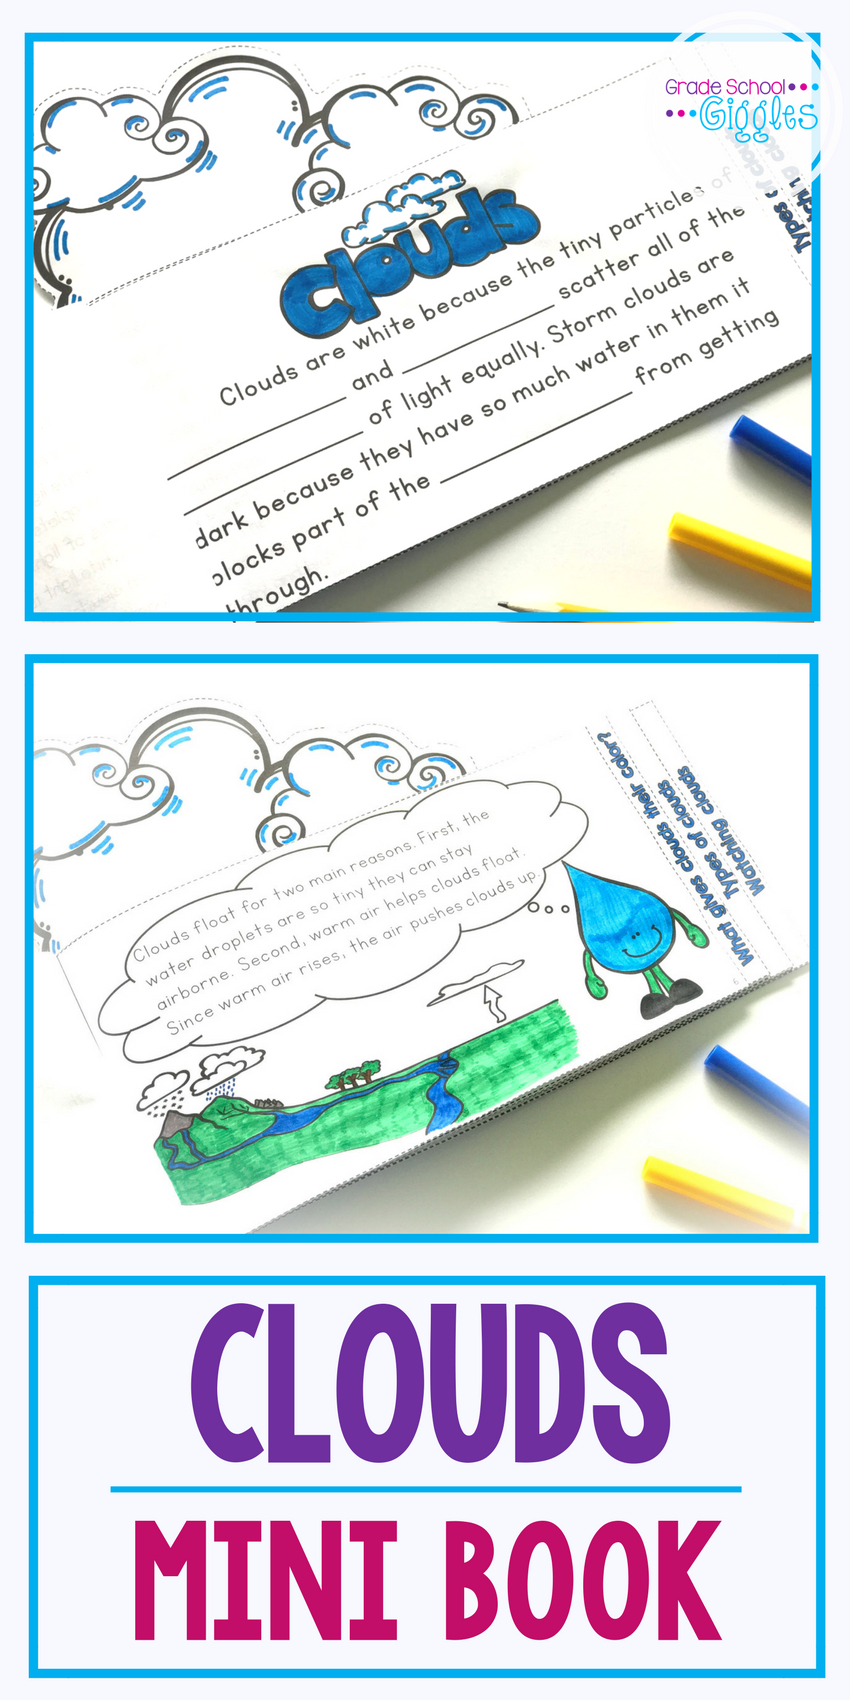 Worksheets Types Of Clouds Worksheets cloud activities and mini book grade school giggles pinterest clouds are a great science topic to teach with weather unit or lesson on